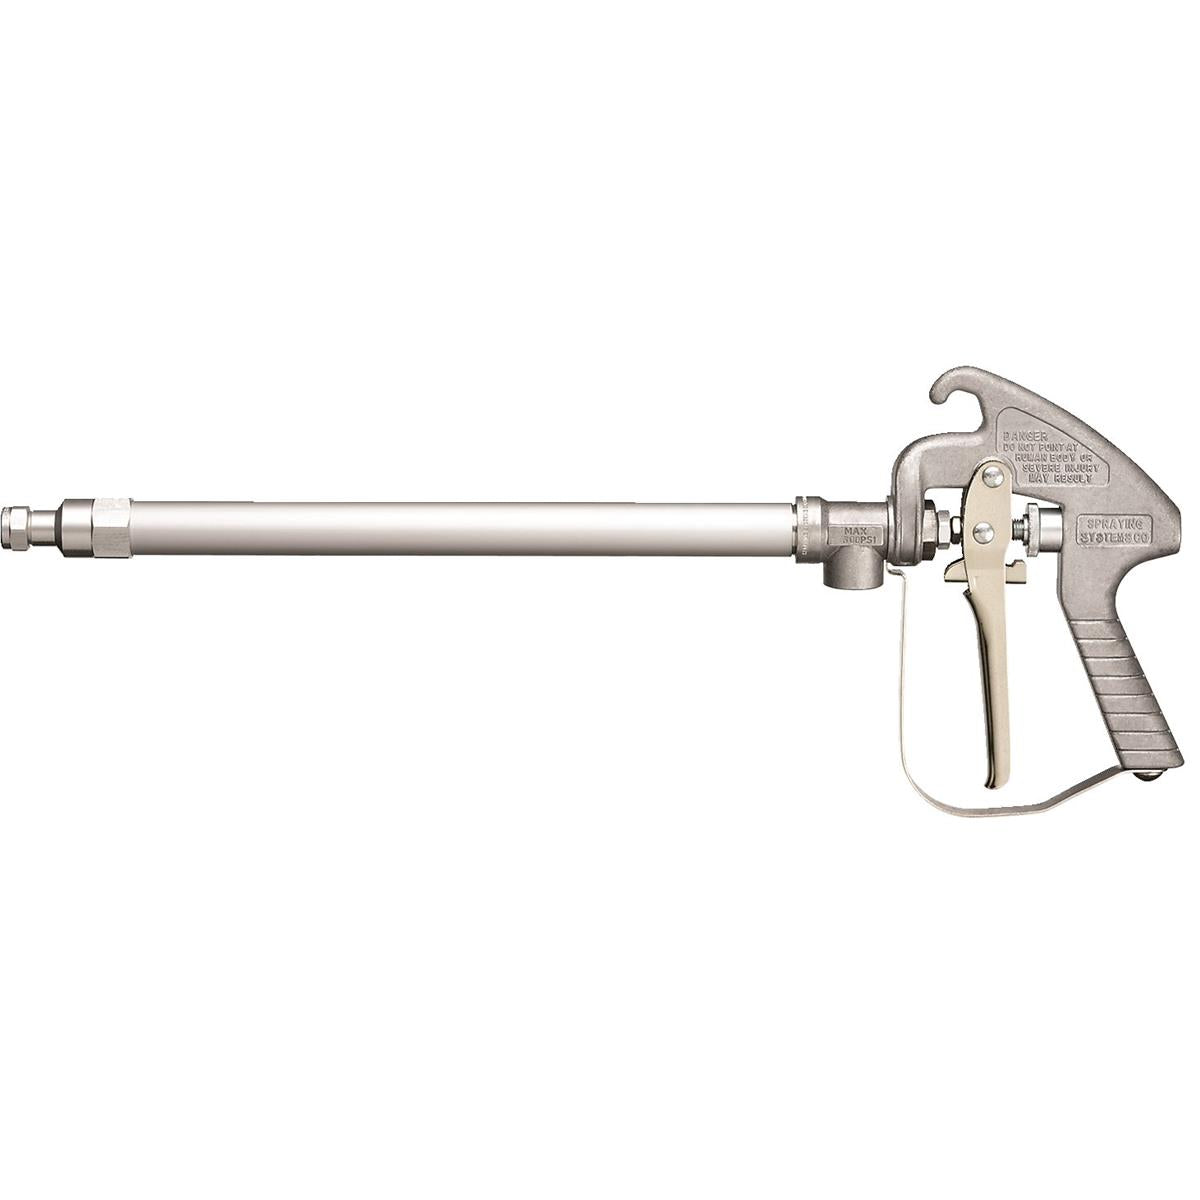 GunJet® AA43 Spray Gun, Low Pressure